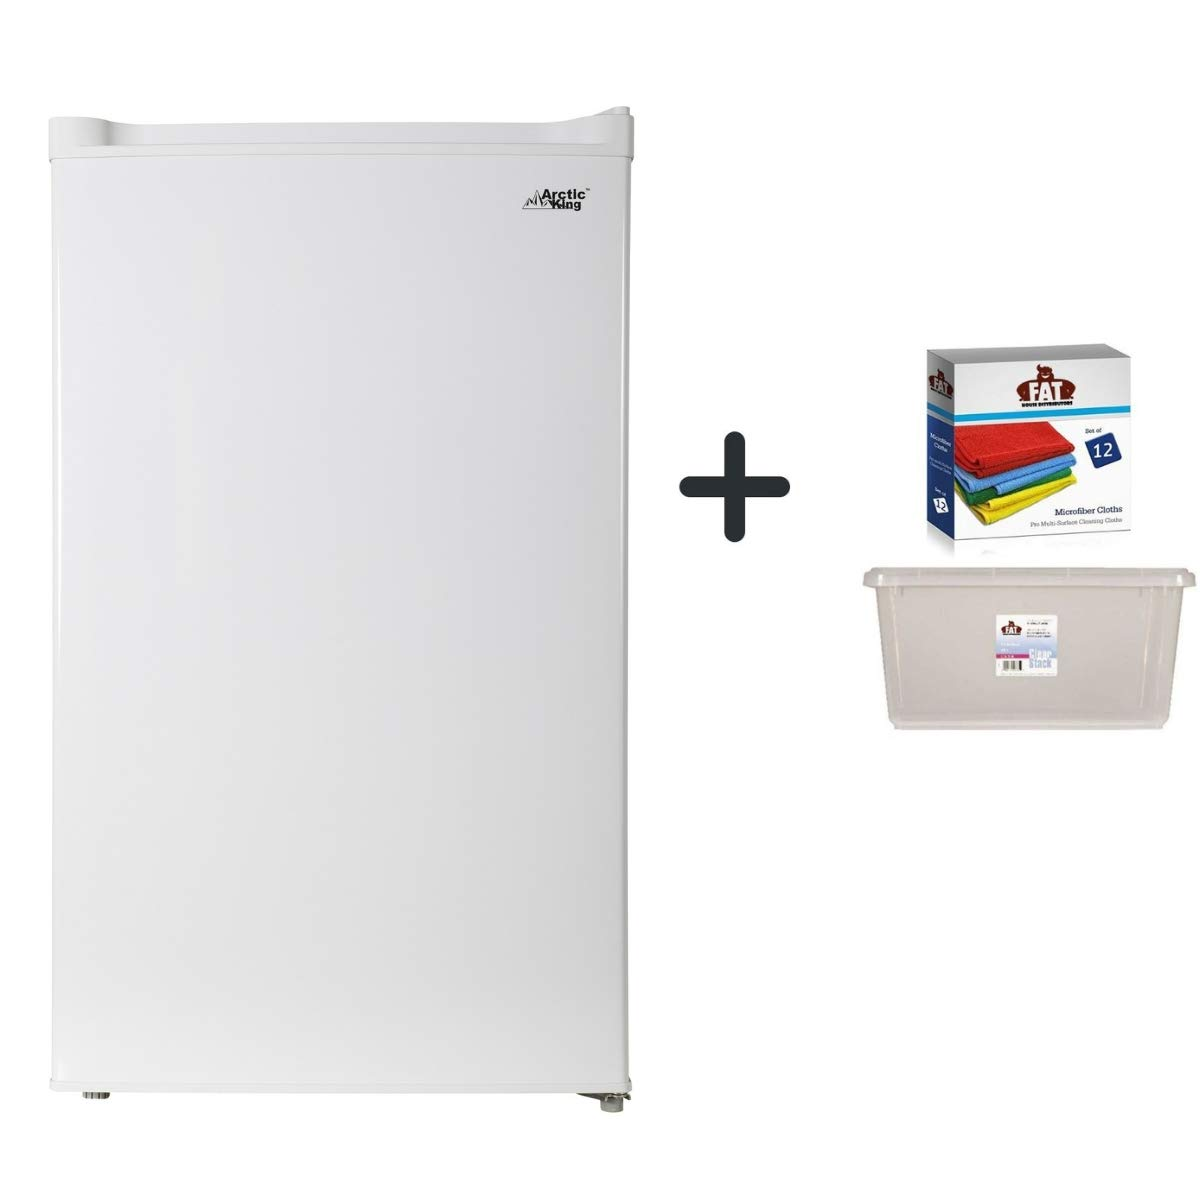 a Dozen of Cleaning Clothes with Clear Storage by Fat House Distributors Arctic King 1.1 cu ft Upright Freezer White